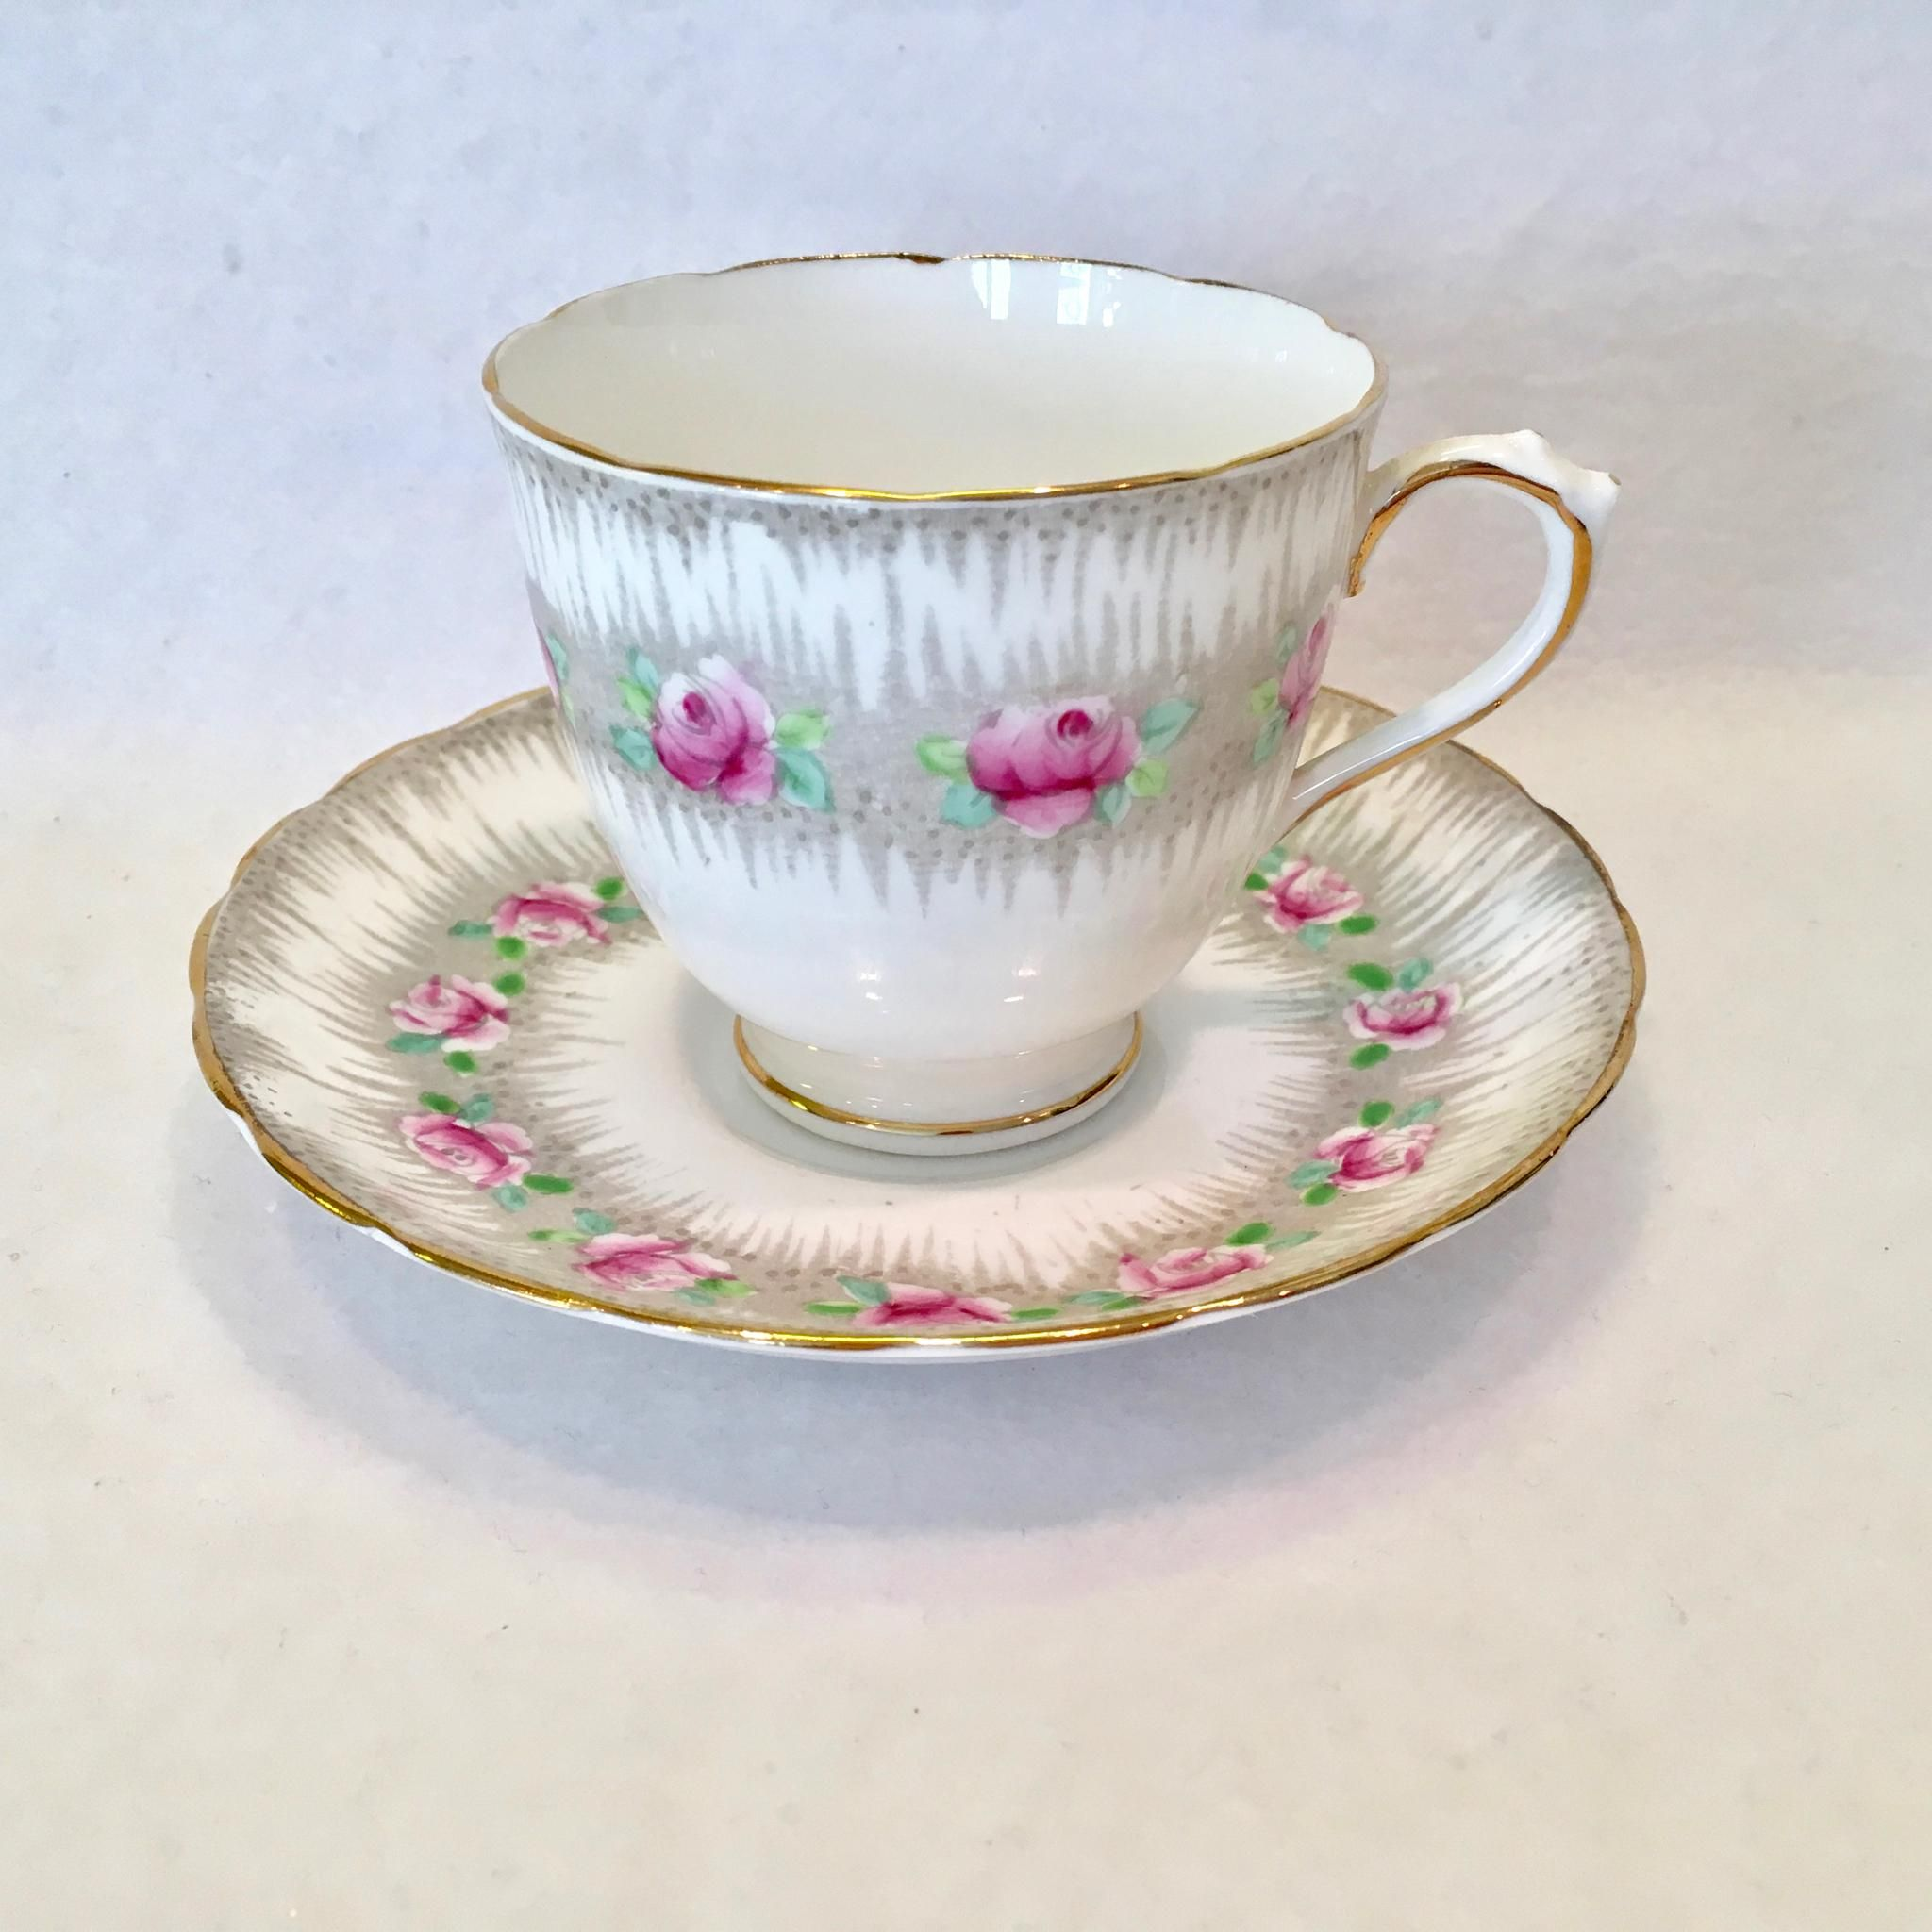 This pretty Plant Tuscan Bone China Teacup and Saucer with enameled Pink Roses and Green Leaves on Gray is numbered C6561. A ring of pretty pink rose